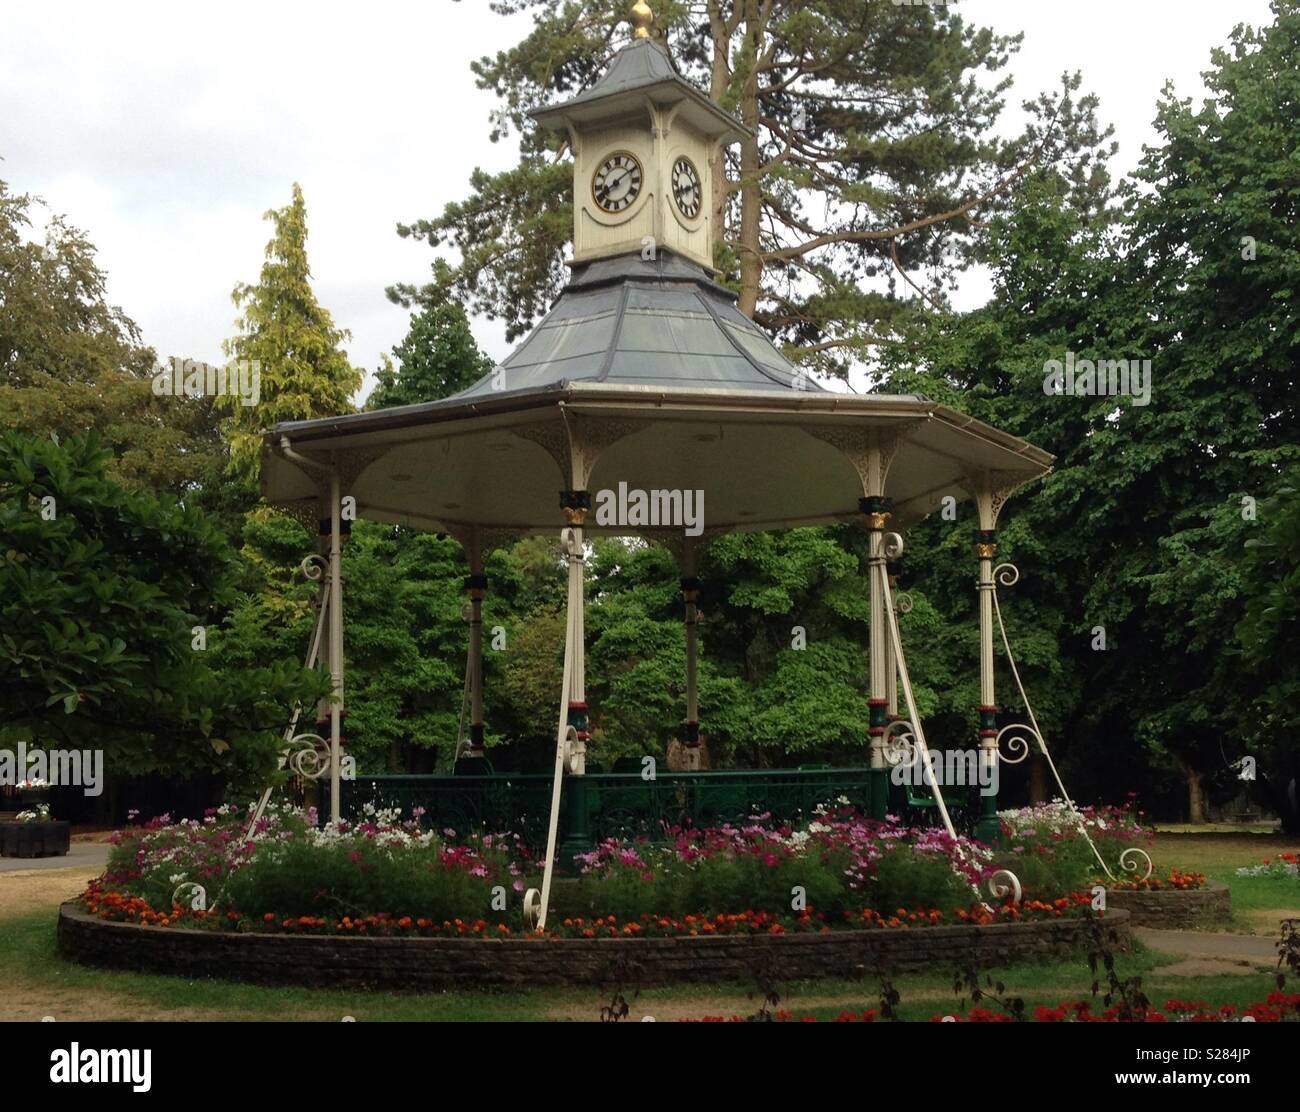 Victorian bandstand - Stock Image